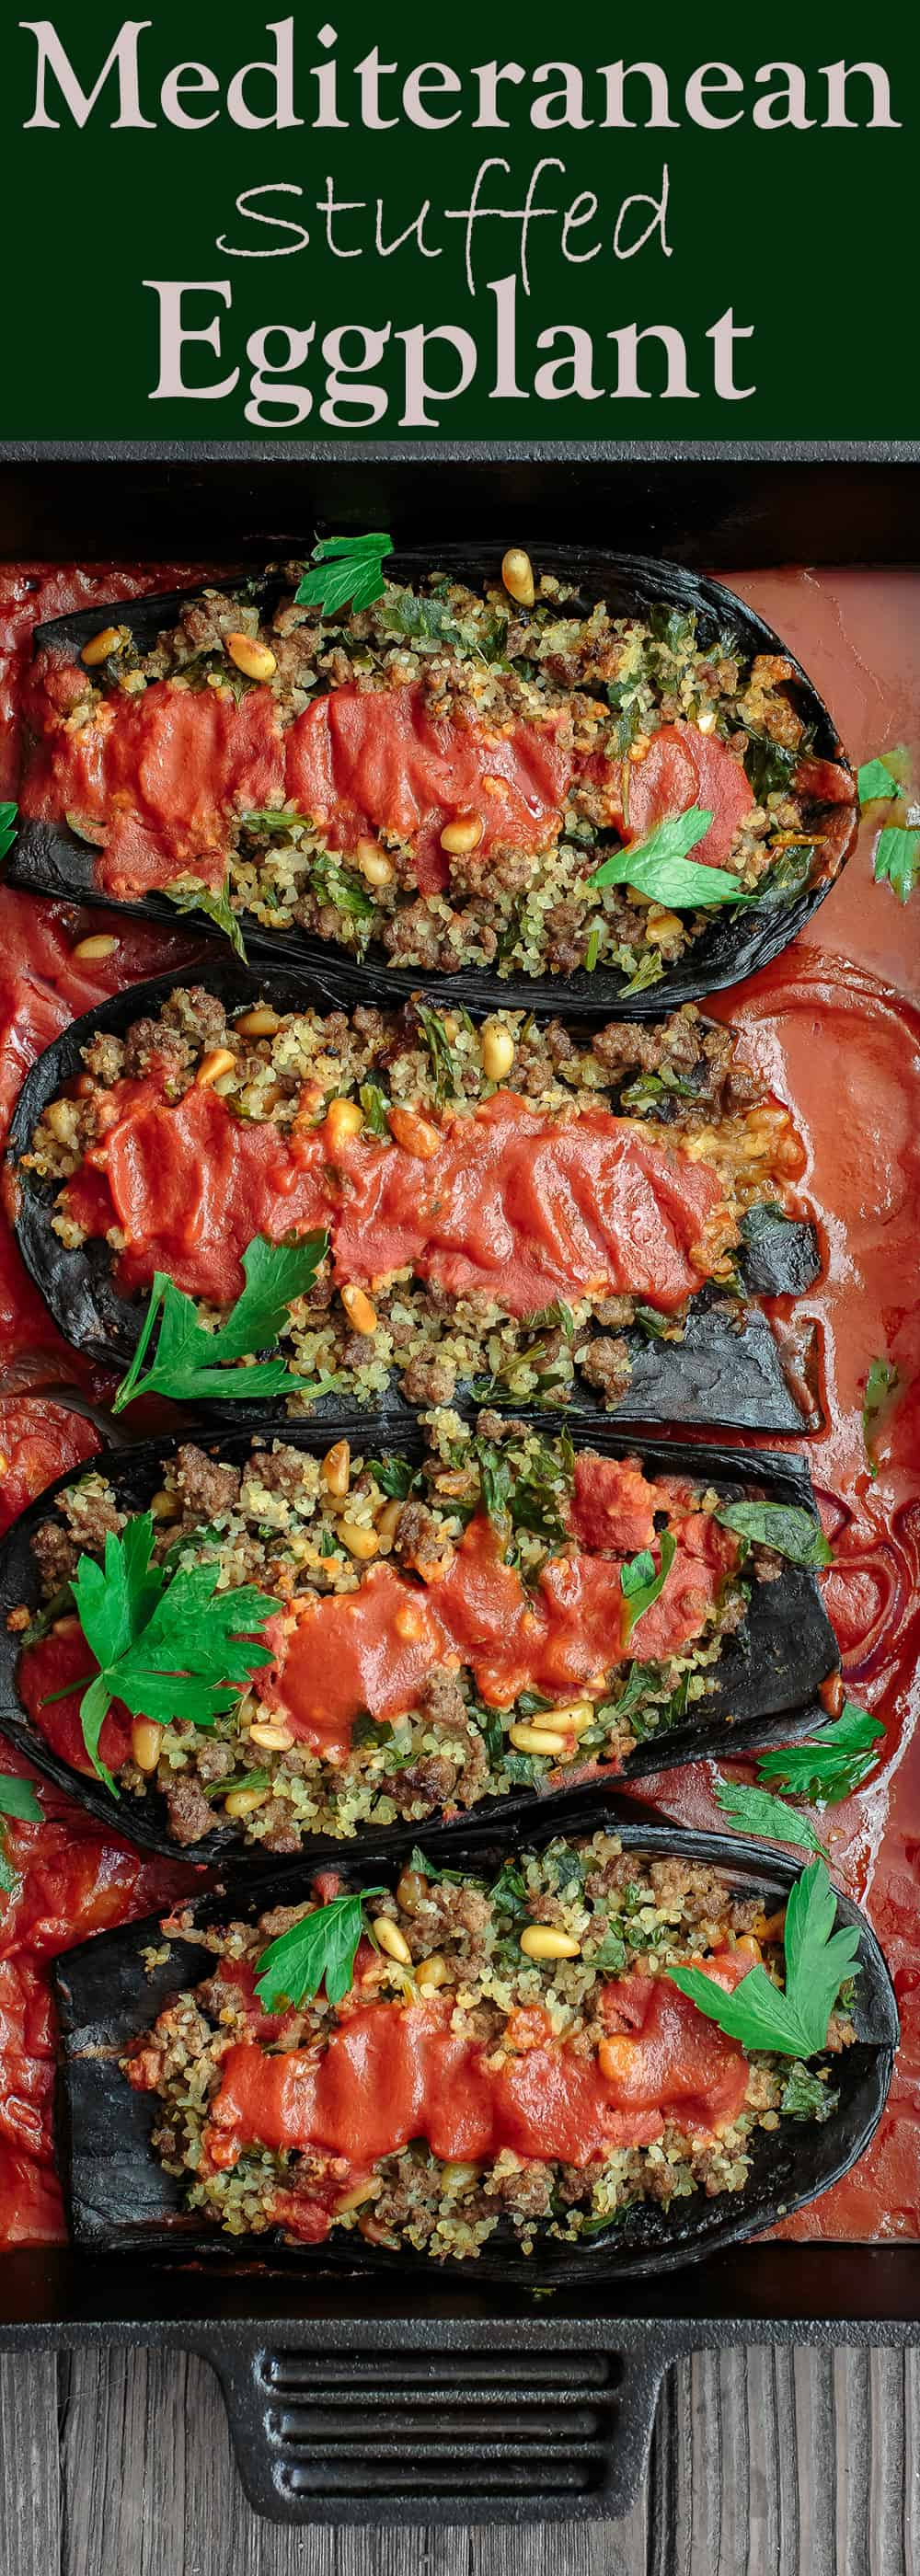 Mediterranean Stuffed Eggplant Recipe | The Mediterranean Dish. This is a must-try all star recipe for stuffed eggplants. Roasted eggplants stuffed with a fragrant spiced meat, bulgur and pine nut mixture. So good! See full recipe on TheMediterraneanDish.com